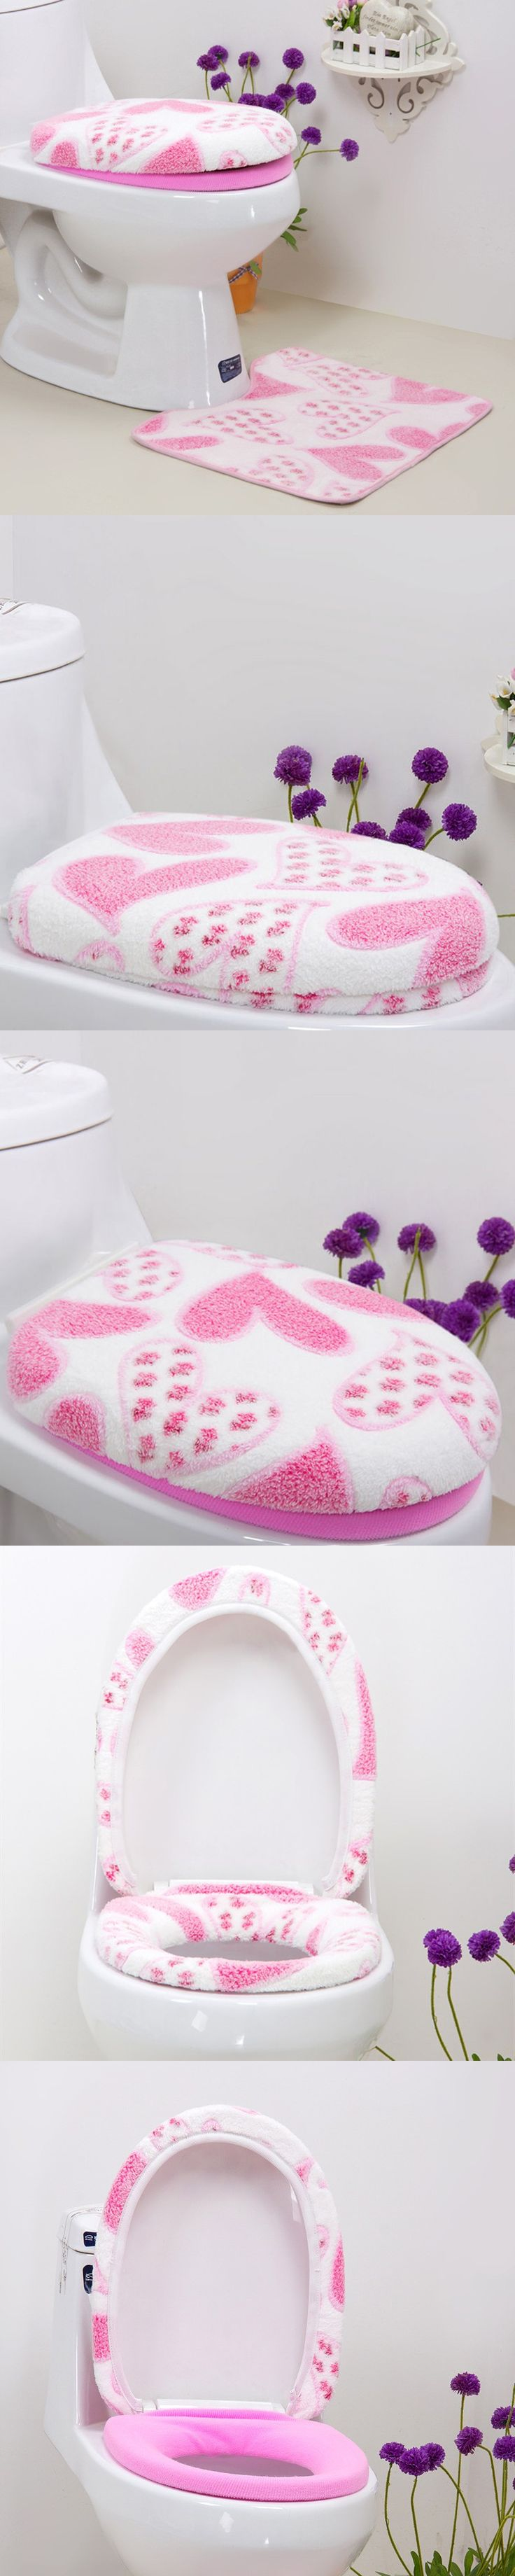 Cheap Winter Toilet Seat Cover U shaped Bath Mat Toliet Case Cover Home Decor Bathroom Products Toilet Pads Mat Rugs. 1000  ideas about Bath Mats  amp  Rugs on Pinterest   Bathroom  Ouija